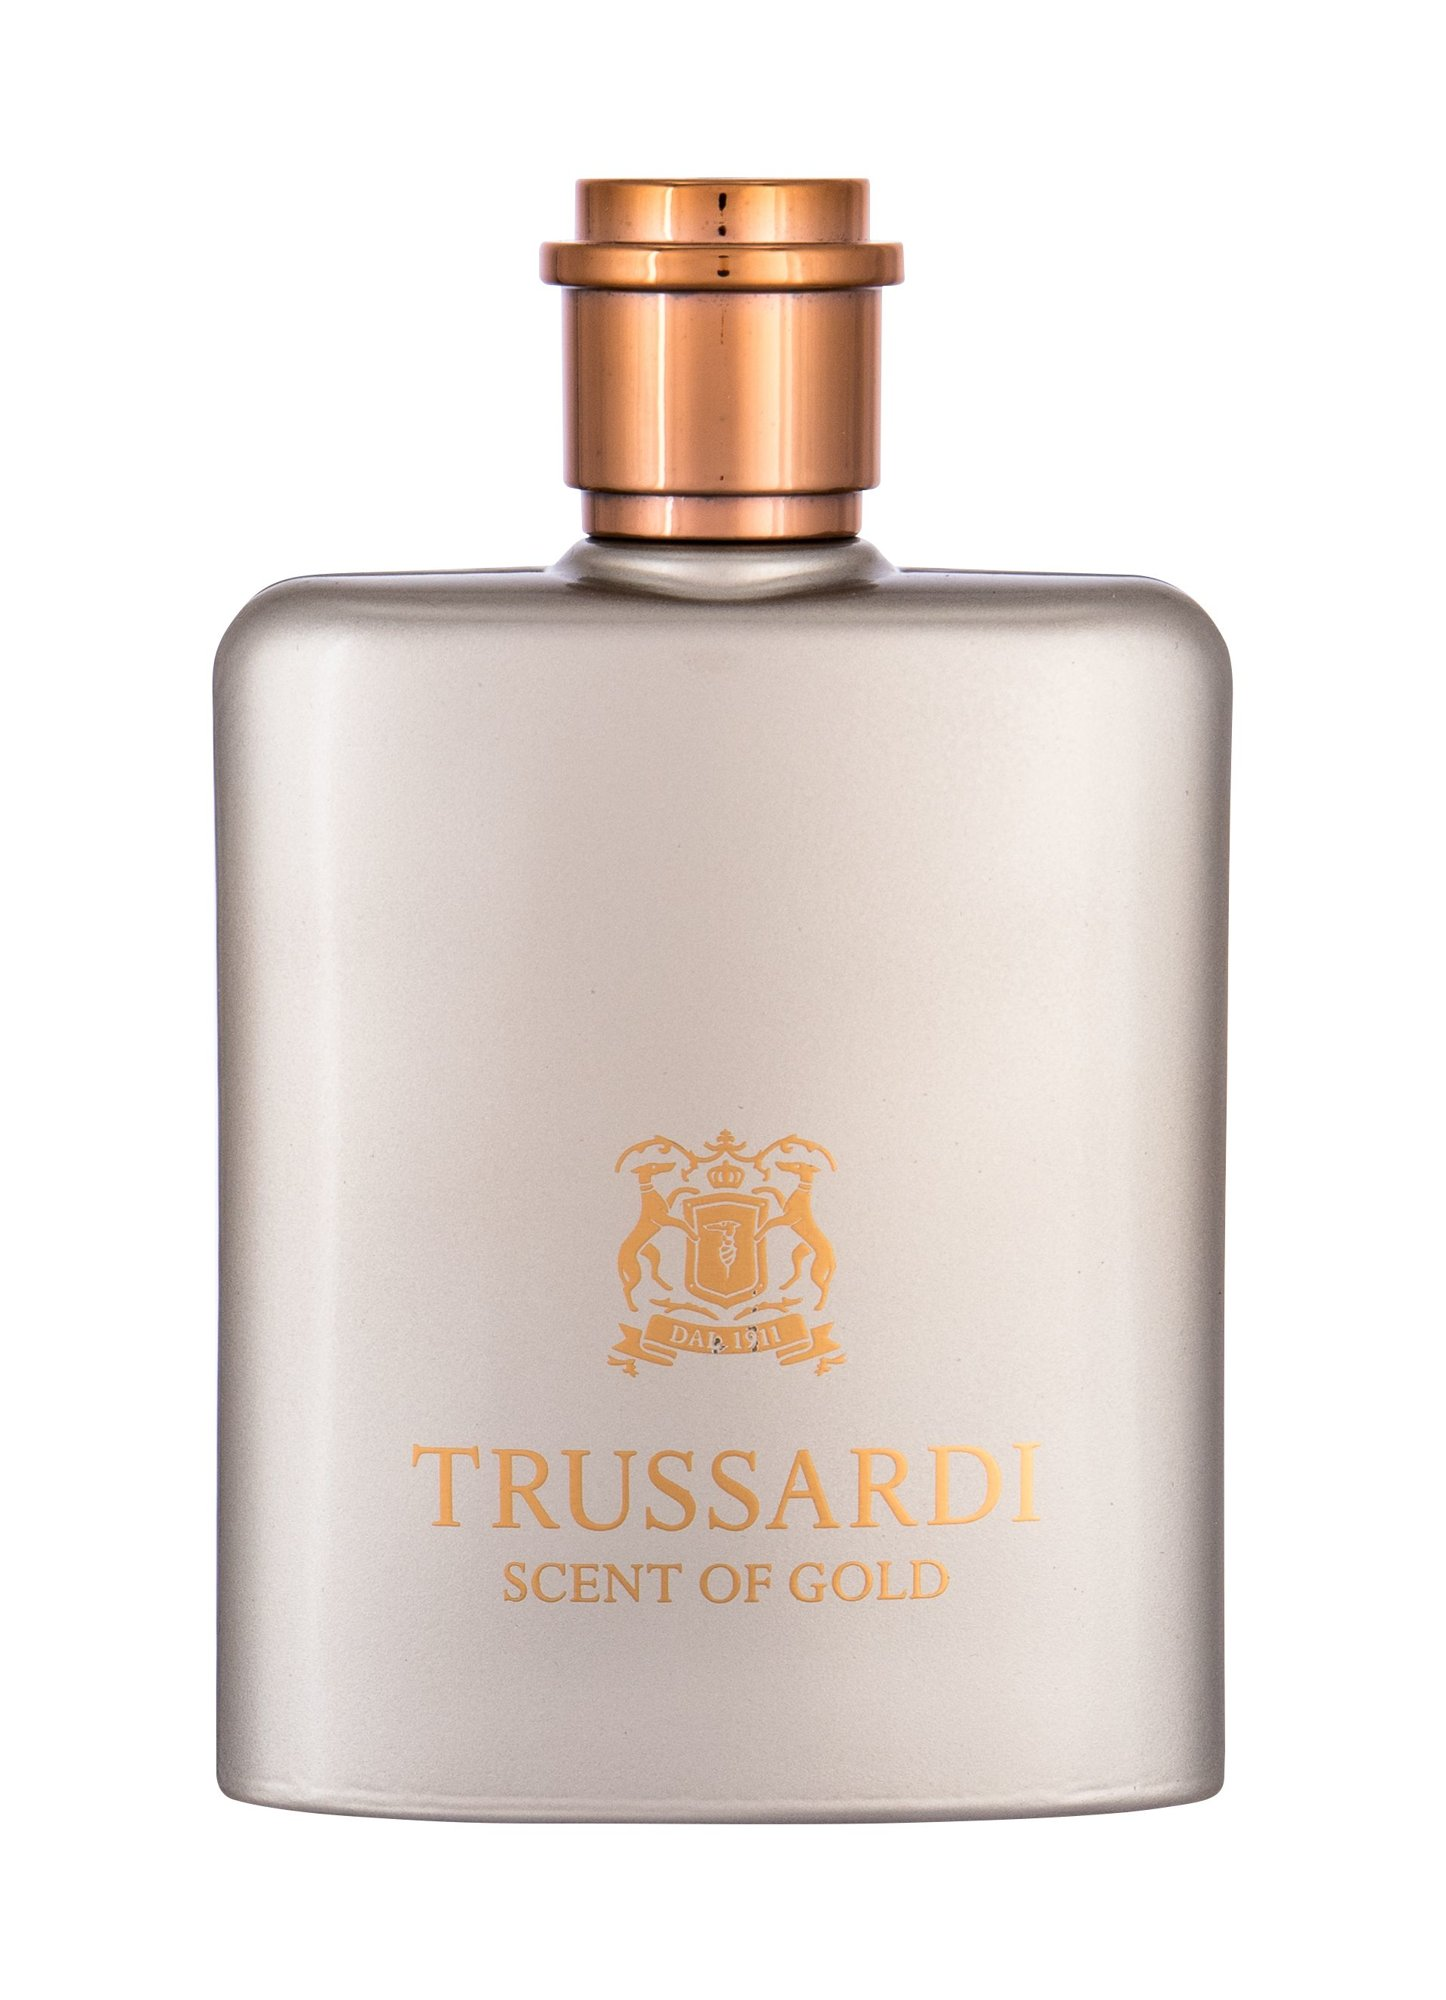 Trussardi Scent Of Gold Eau de Parfum 100ml